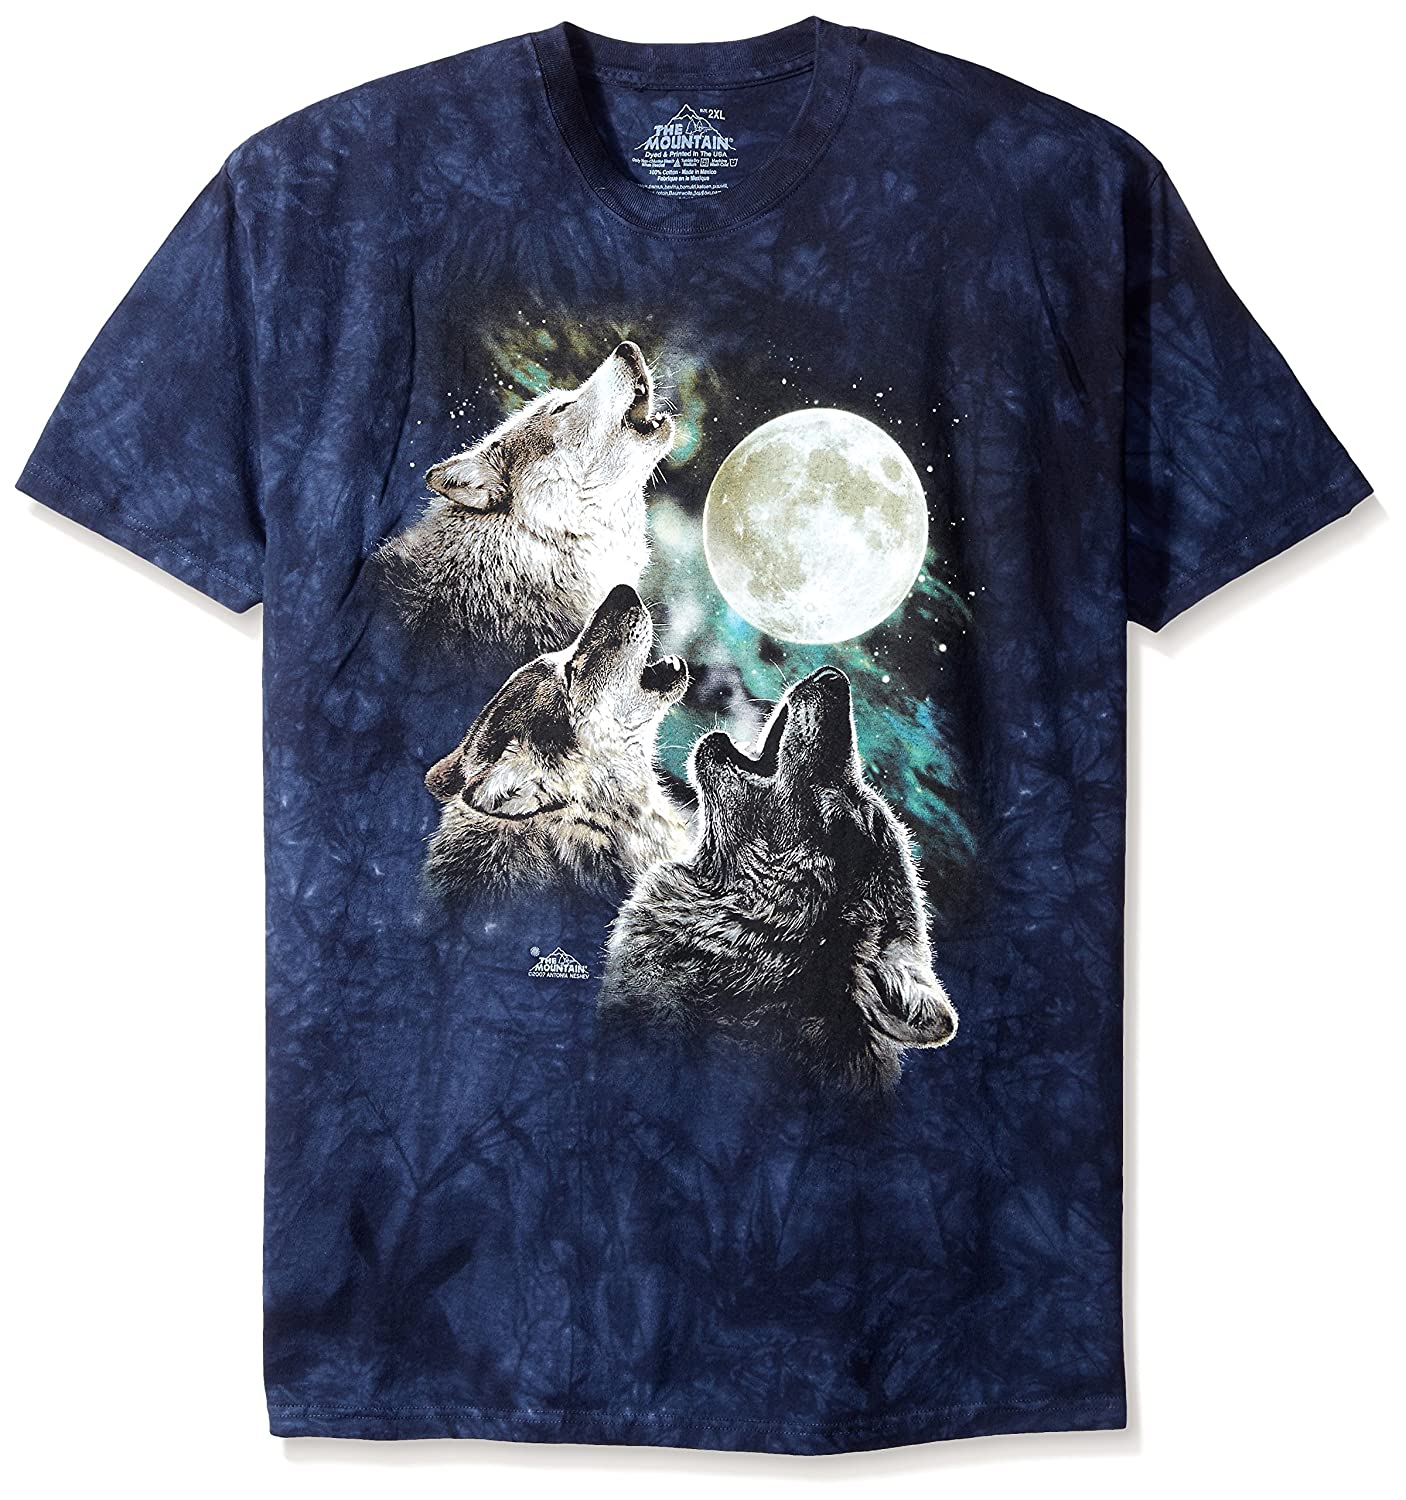 7d77d12bfcb Amazon.com  The Mountain Three Wolf Moon Short Sleeve Tee  Clothing